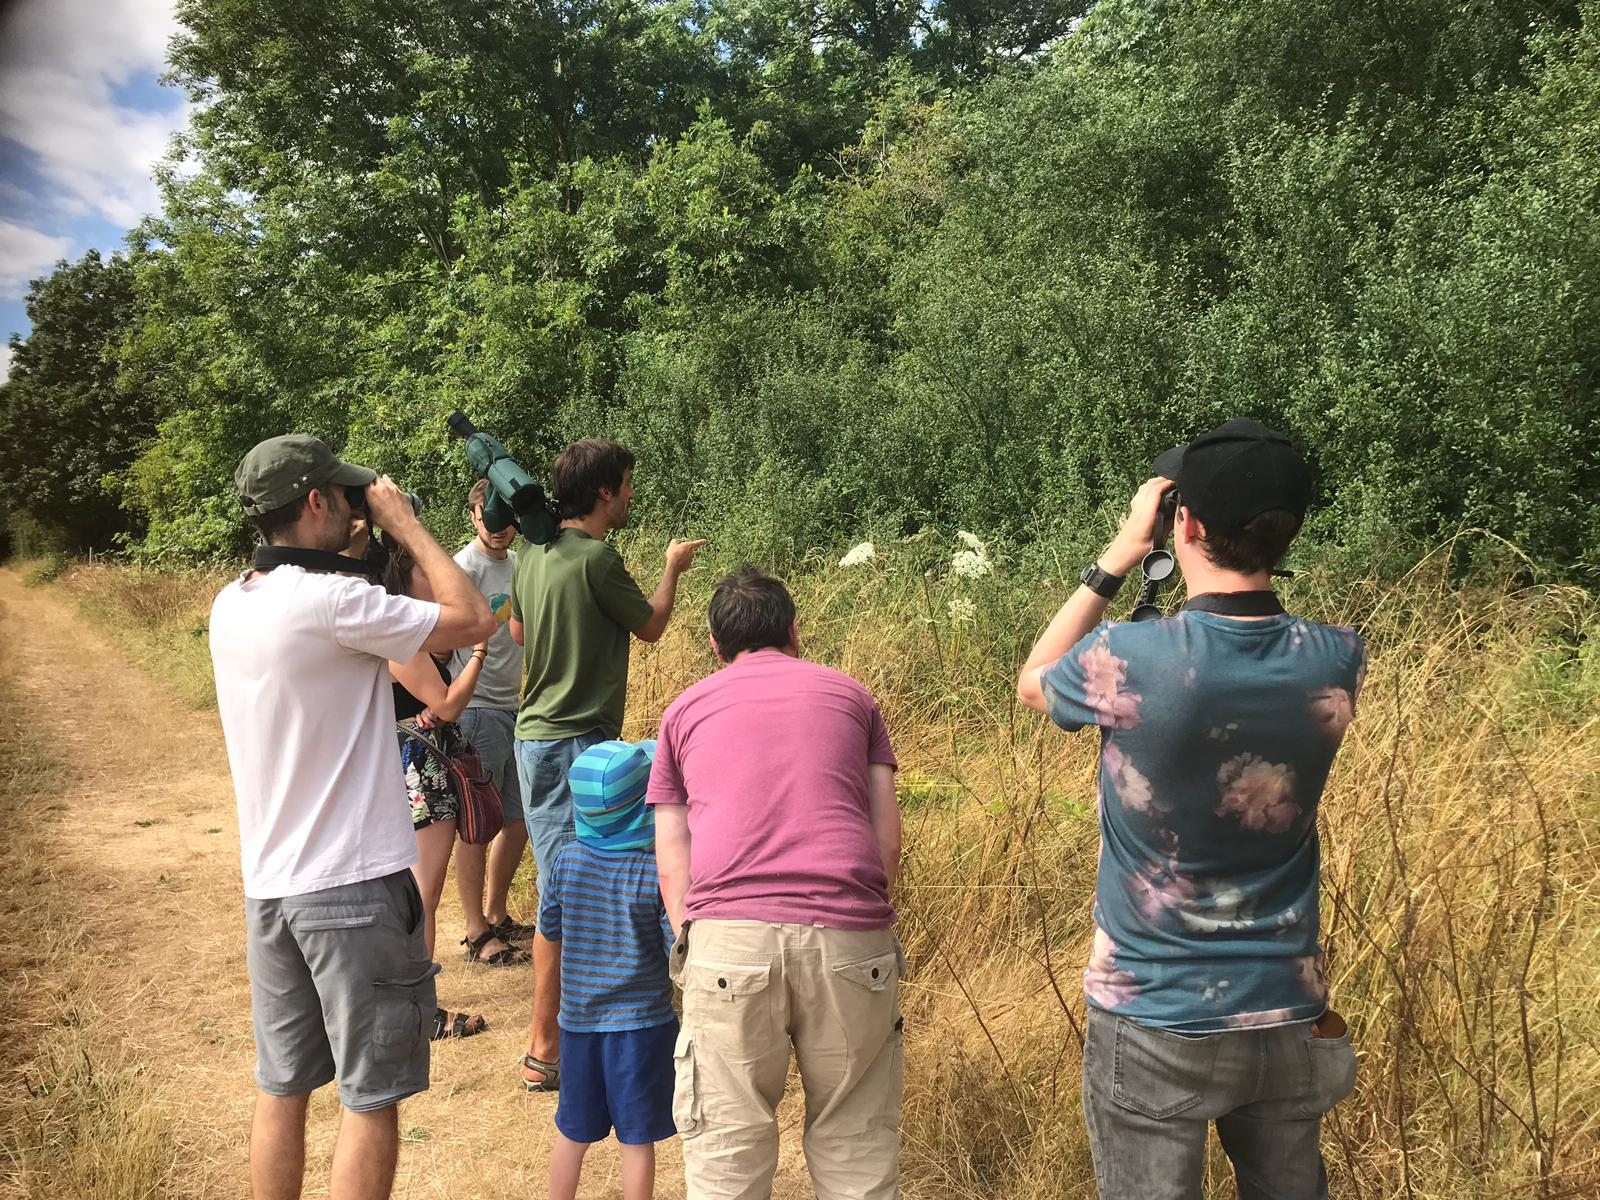 Nick Boyd leads a group of all ages in a nature walk around Hogacre Common Eco Park